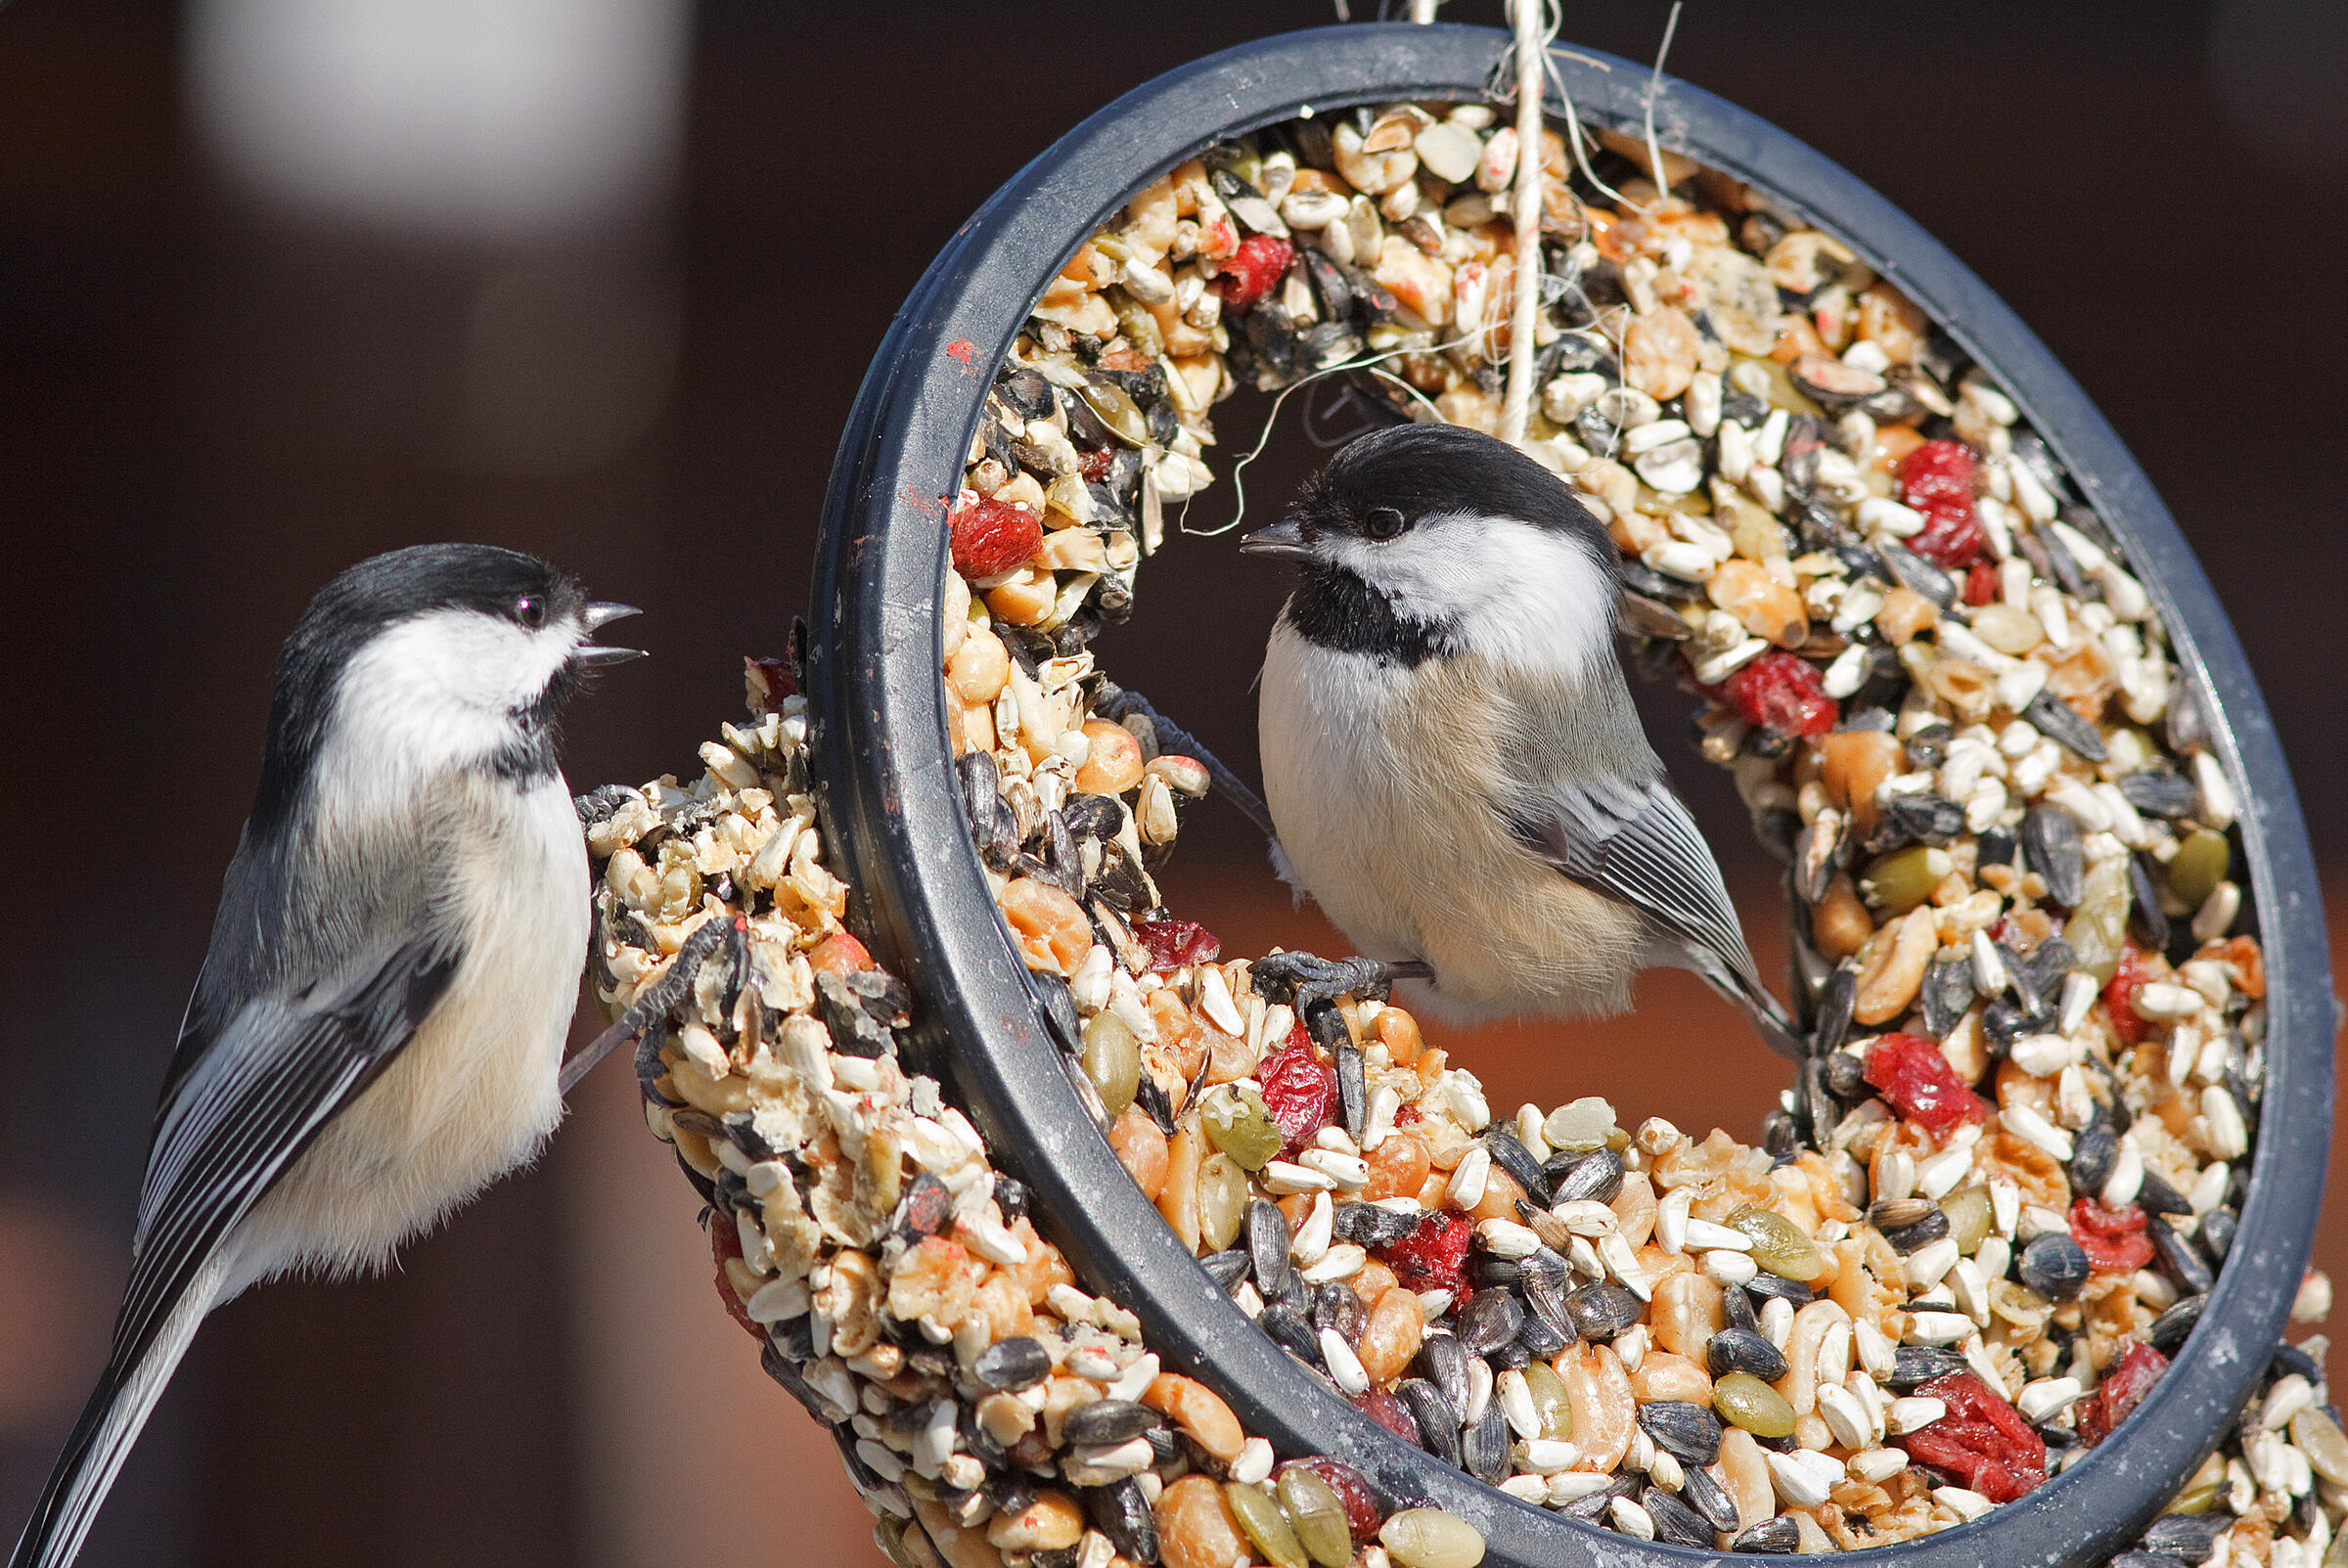 How To Get Rid Of Birds In Backyard to feed, or not to feed | audubon